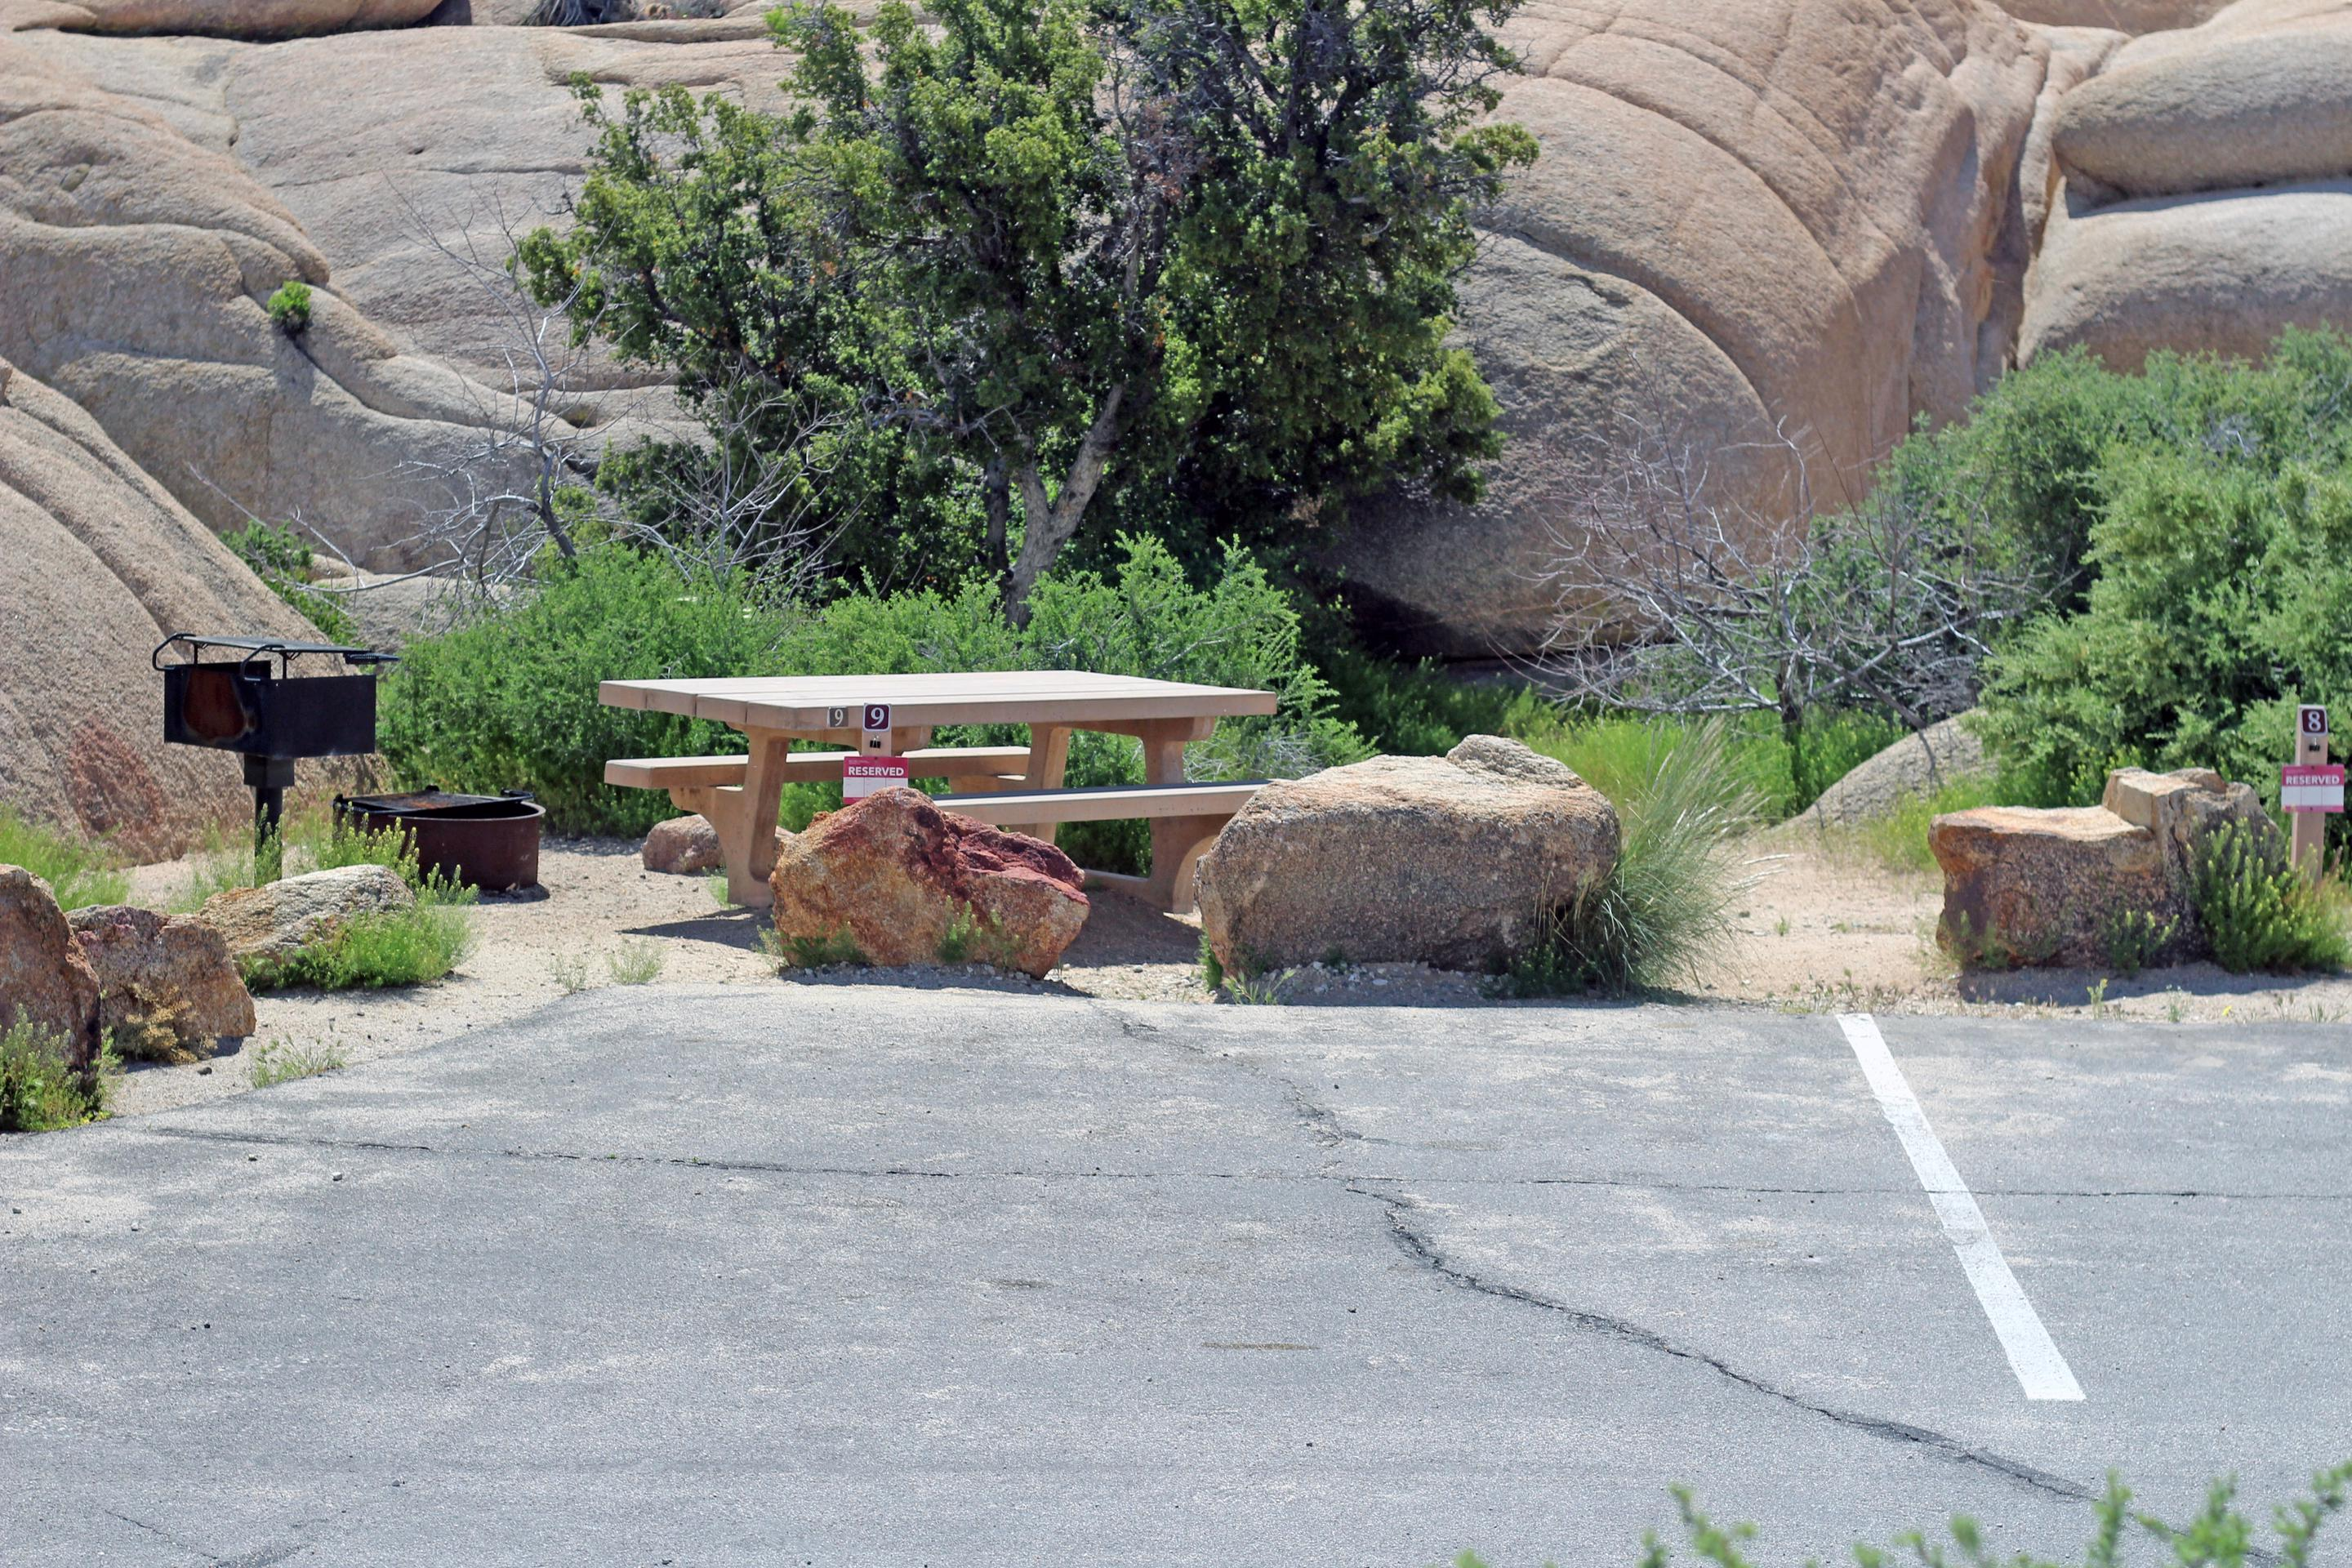 Parking for campsite. Picnic table surrounded by boulders and green plants.Shared parking for campsite.